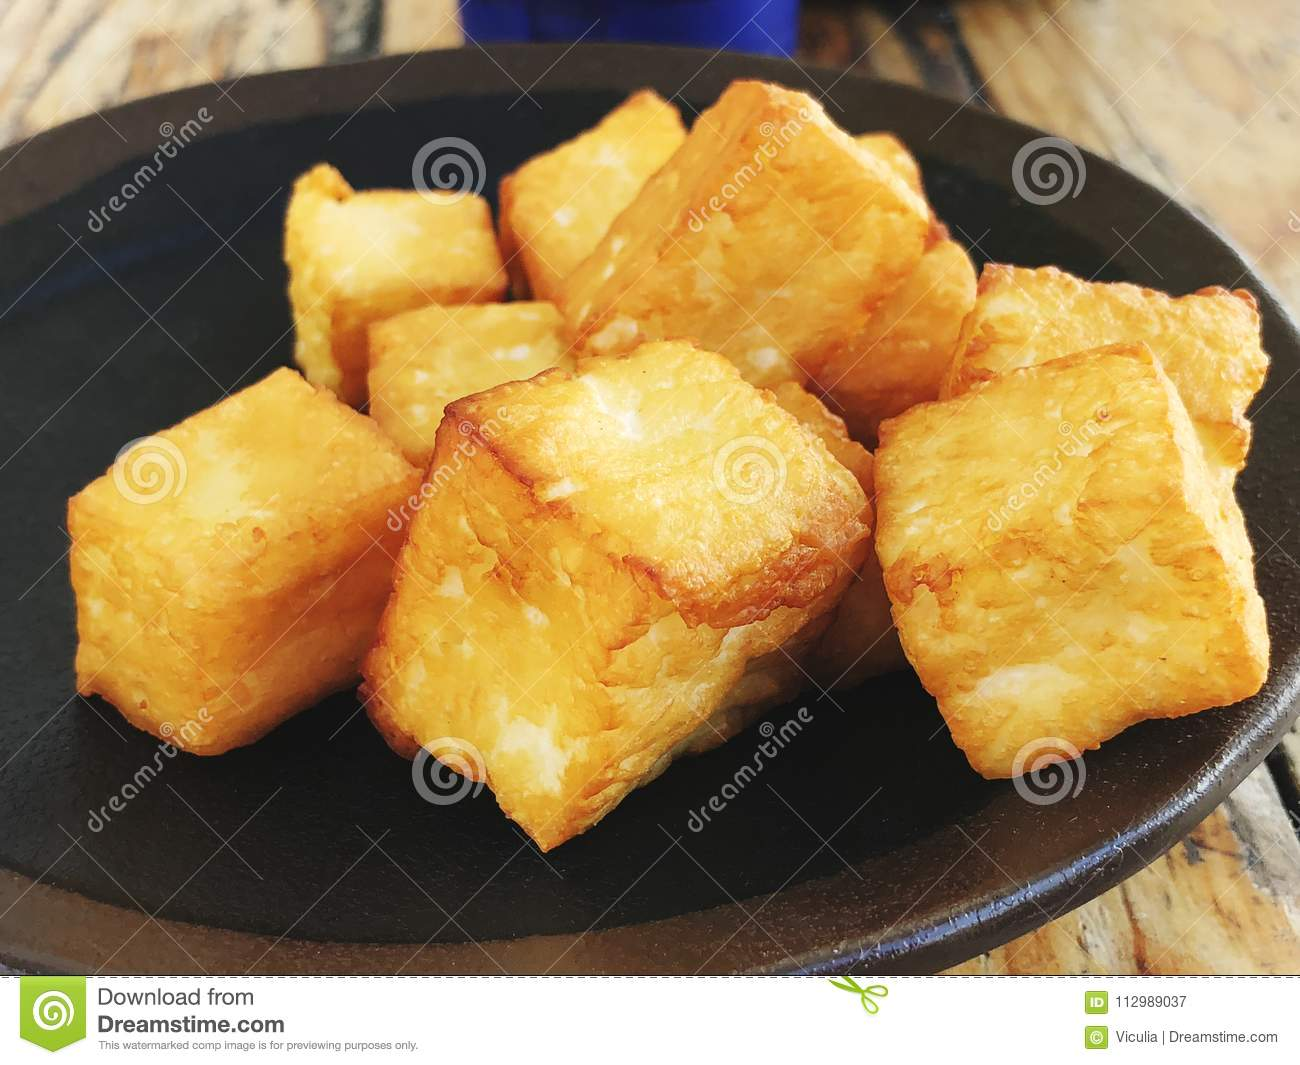 Deliciously fried cheese cubes on a dark plate.